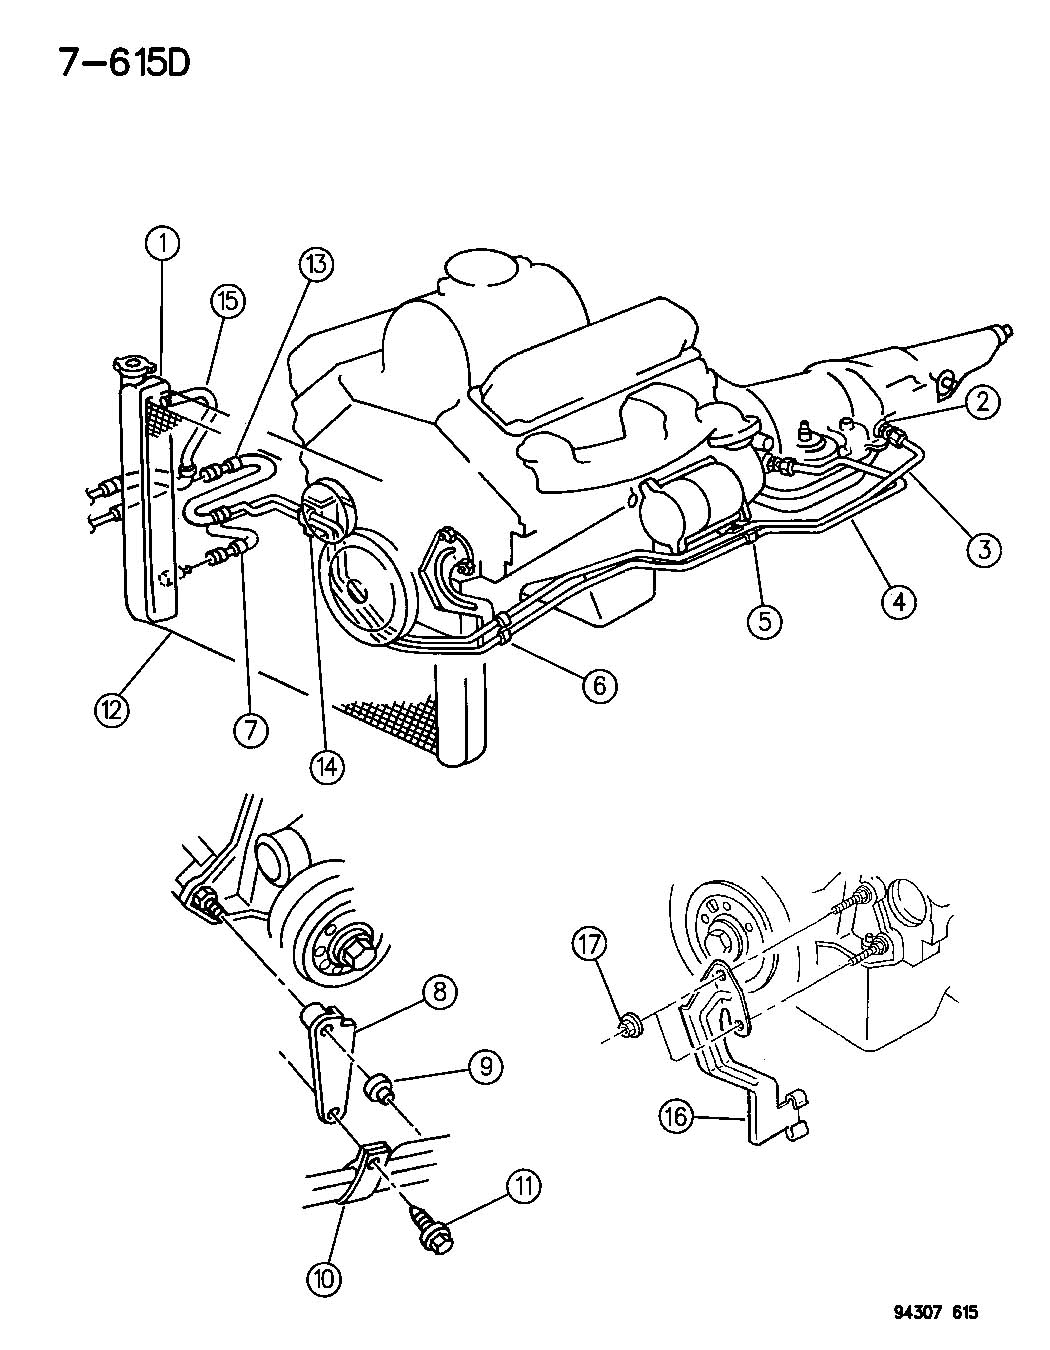 2004 Mazda Mpv Coolant Temperature Sensor Location moreover 2010 Dodge Grand Caravan Wiring Diagram likewise P 0996b43f81b3cf78 further 04721134AG as well 2013 Dodge Avenger Engine. on chrysler 3 8 engine diagram temp sensor